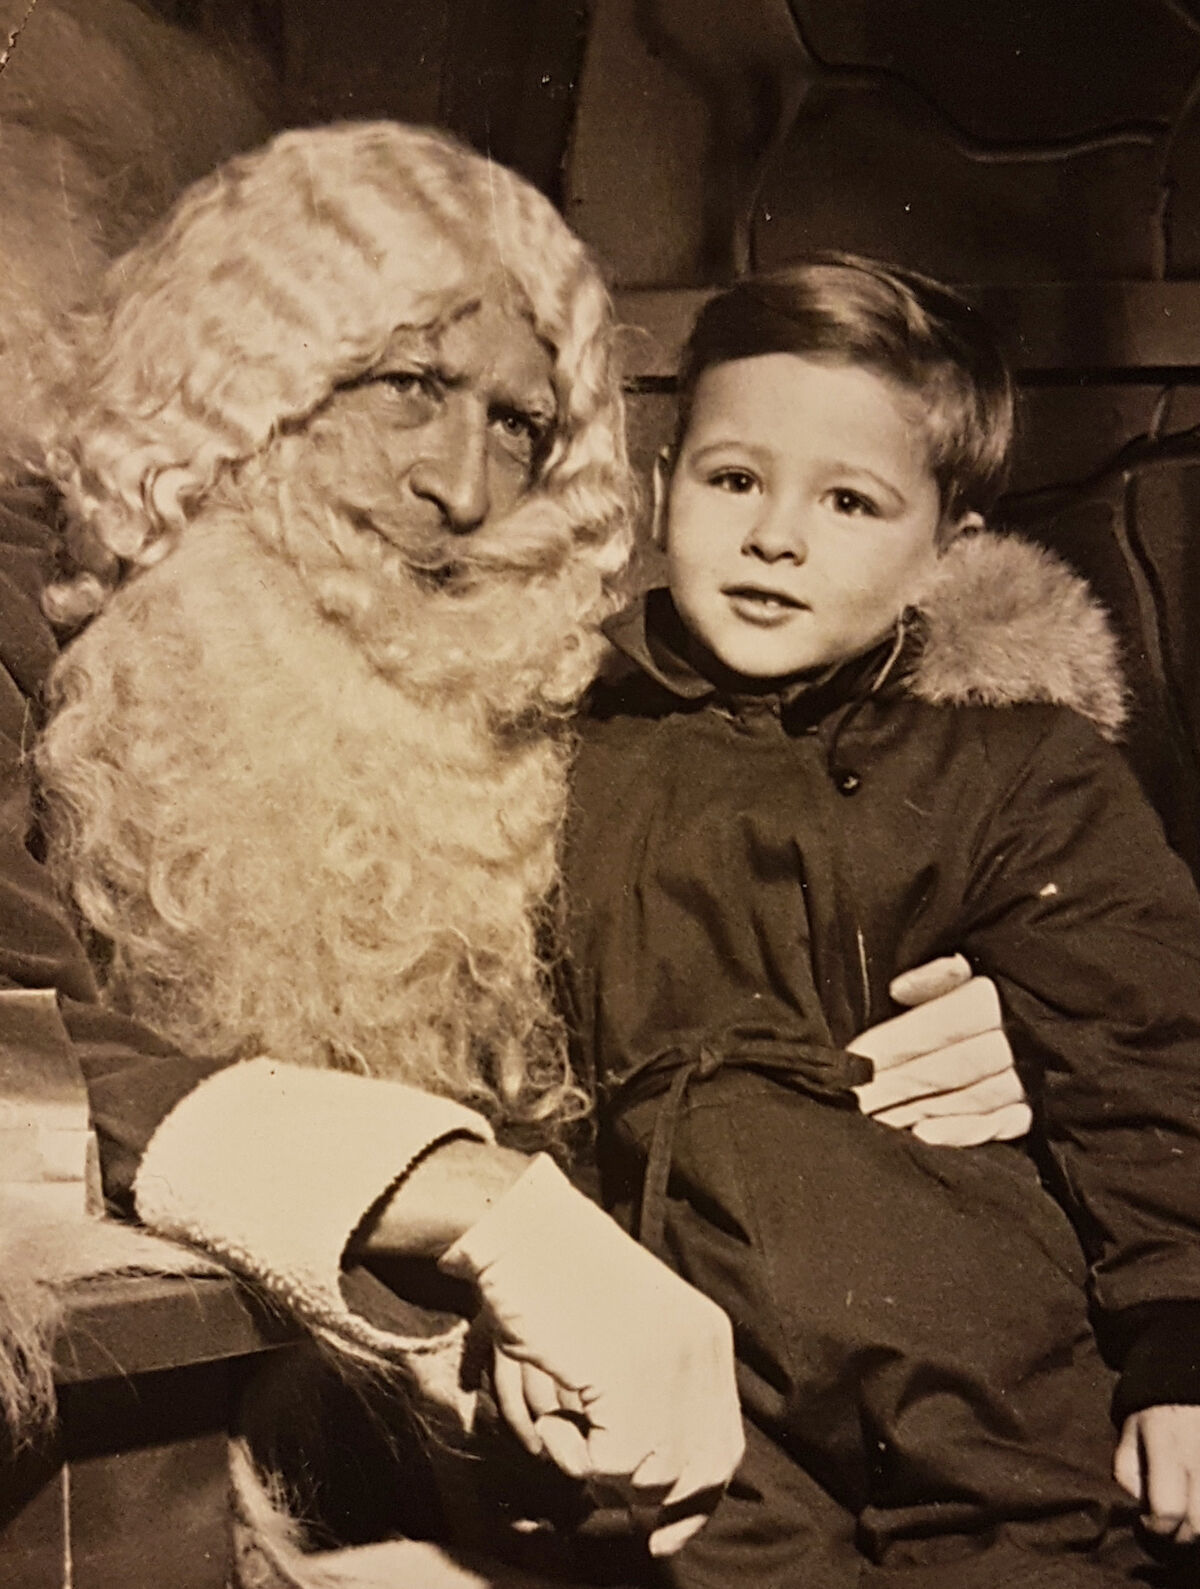 Portrait of AA Bronson with Santa Claus in Edmonton, Canada, 1951. Courtesy of the artist.